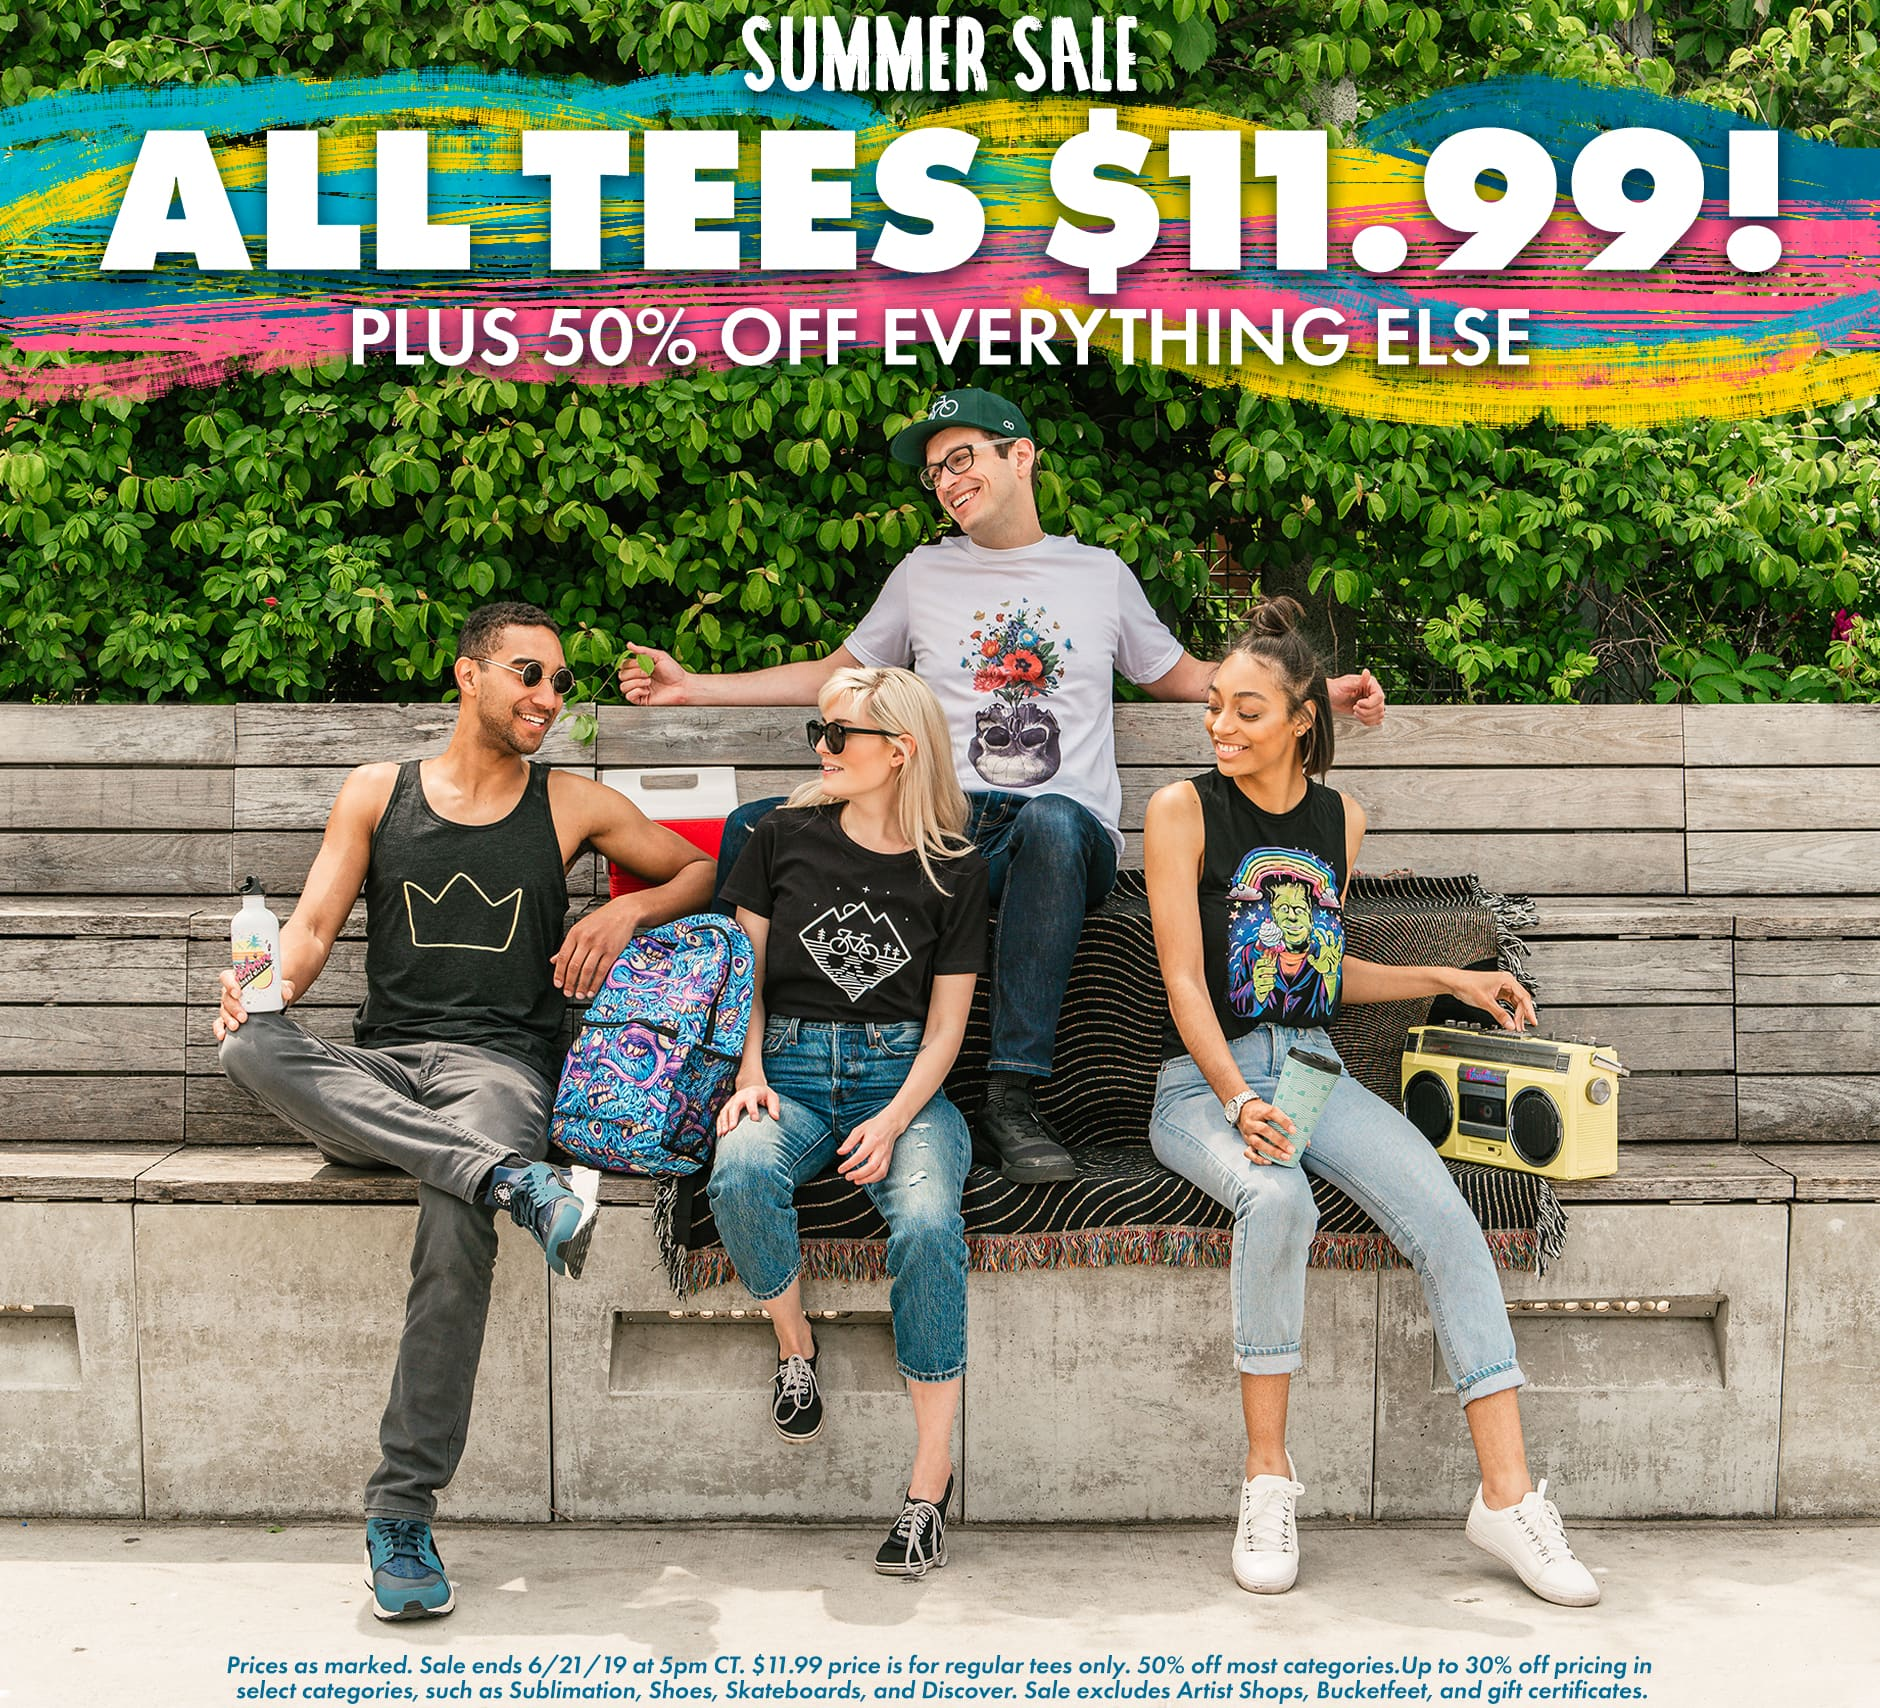 Shop the Threadless Summer Sale! $11.99 Tees plus up to 50% off Sitewide!